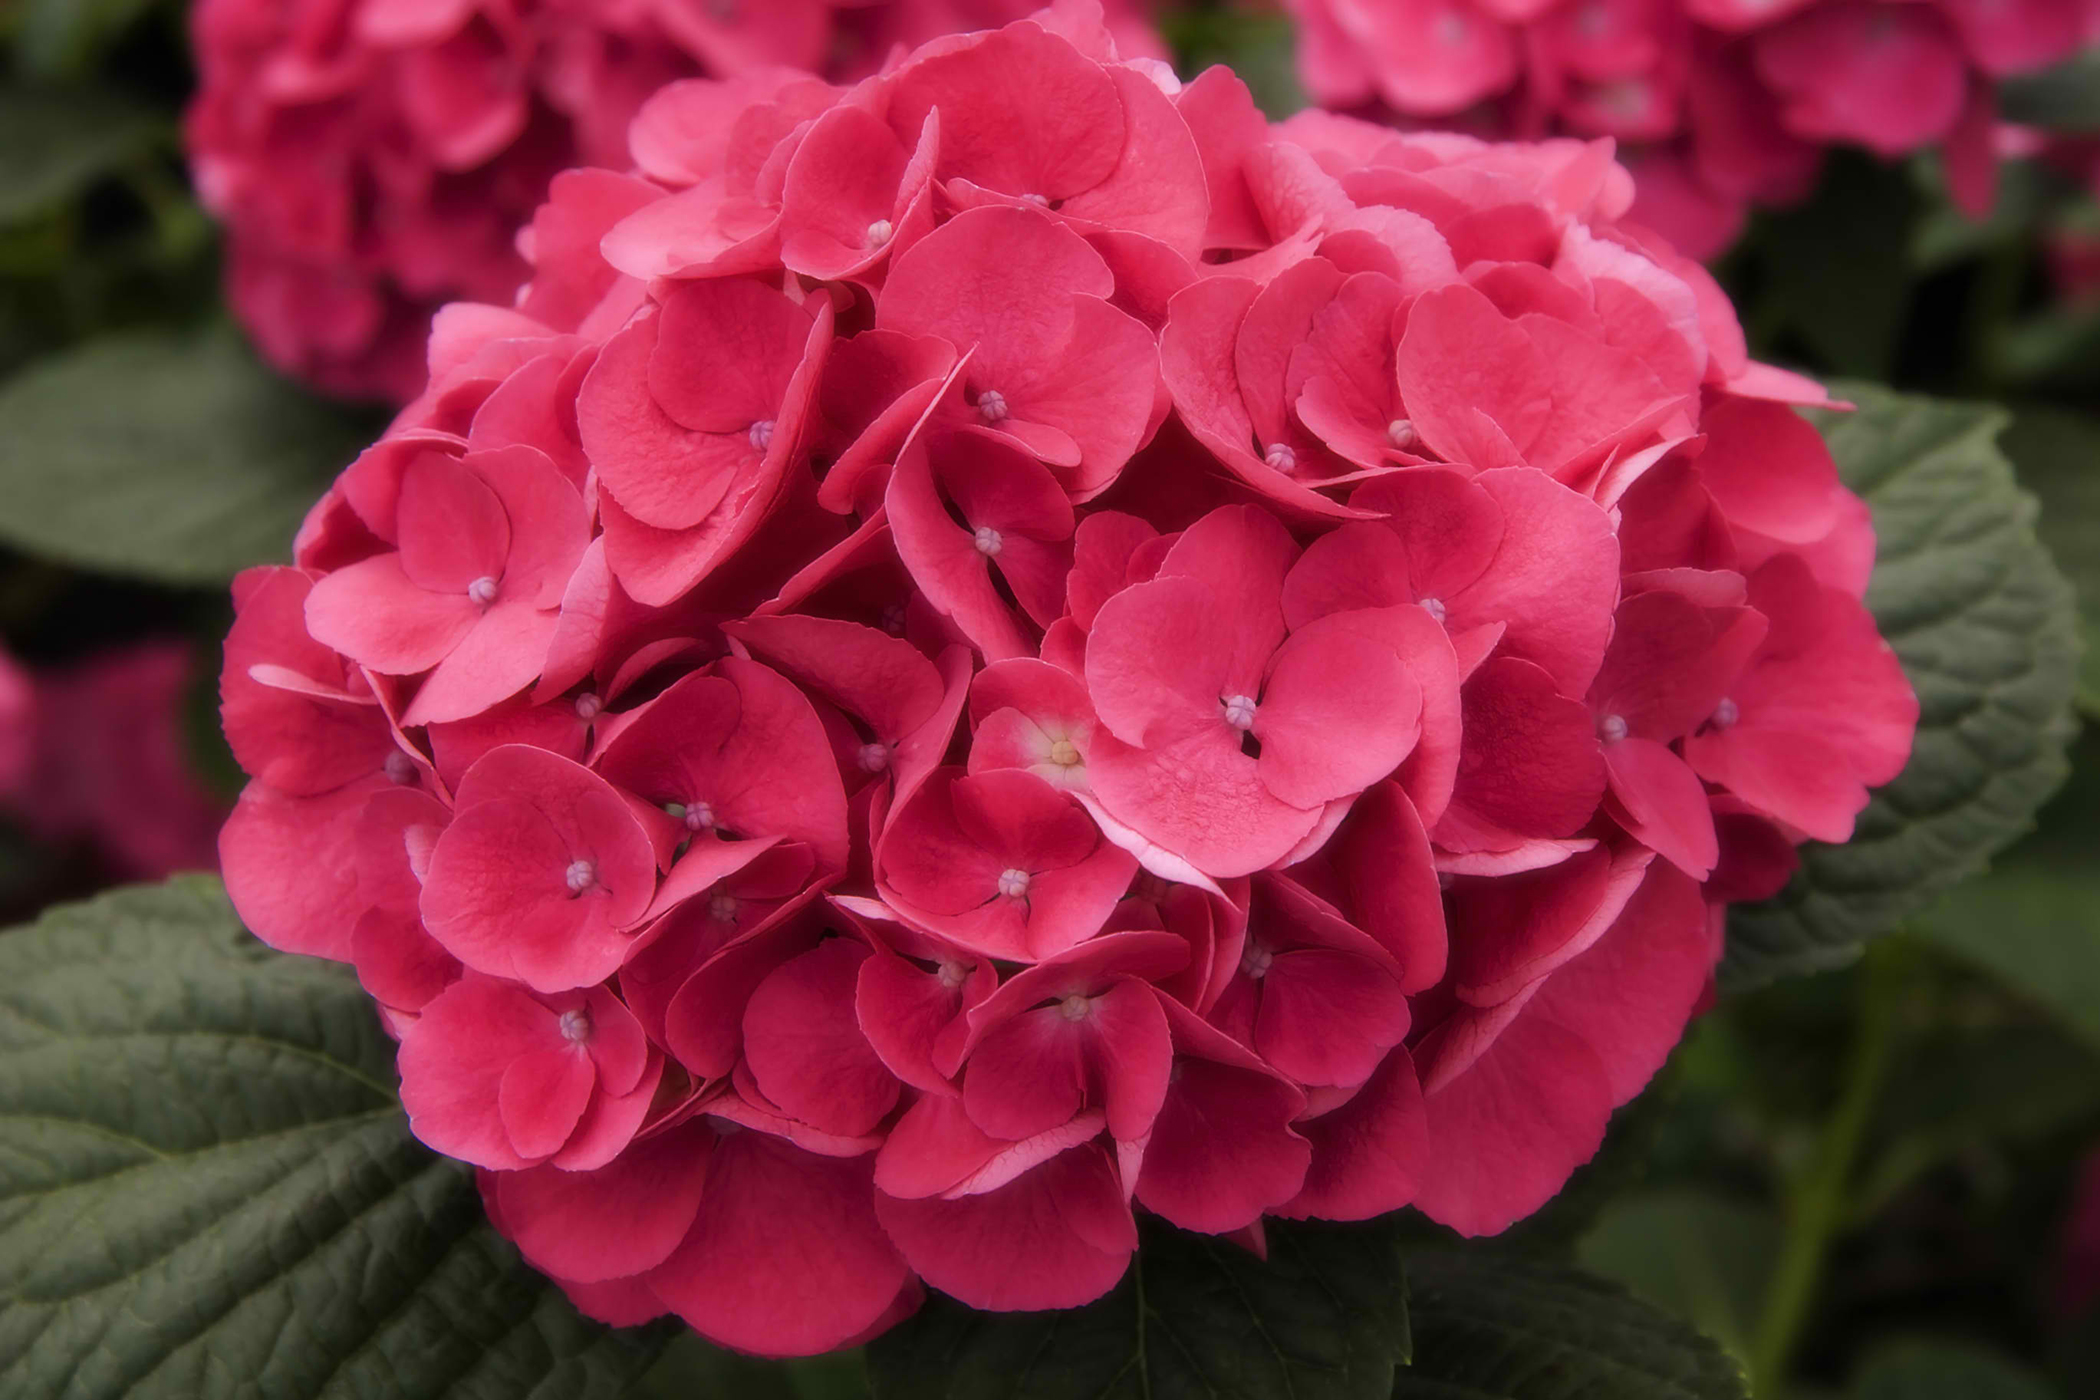 Hydrangea Poisoning in Cats